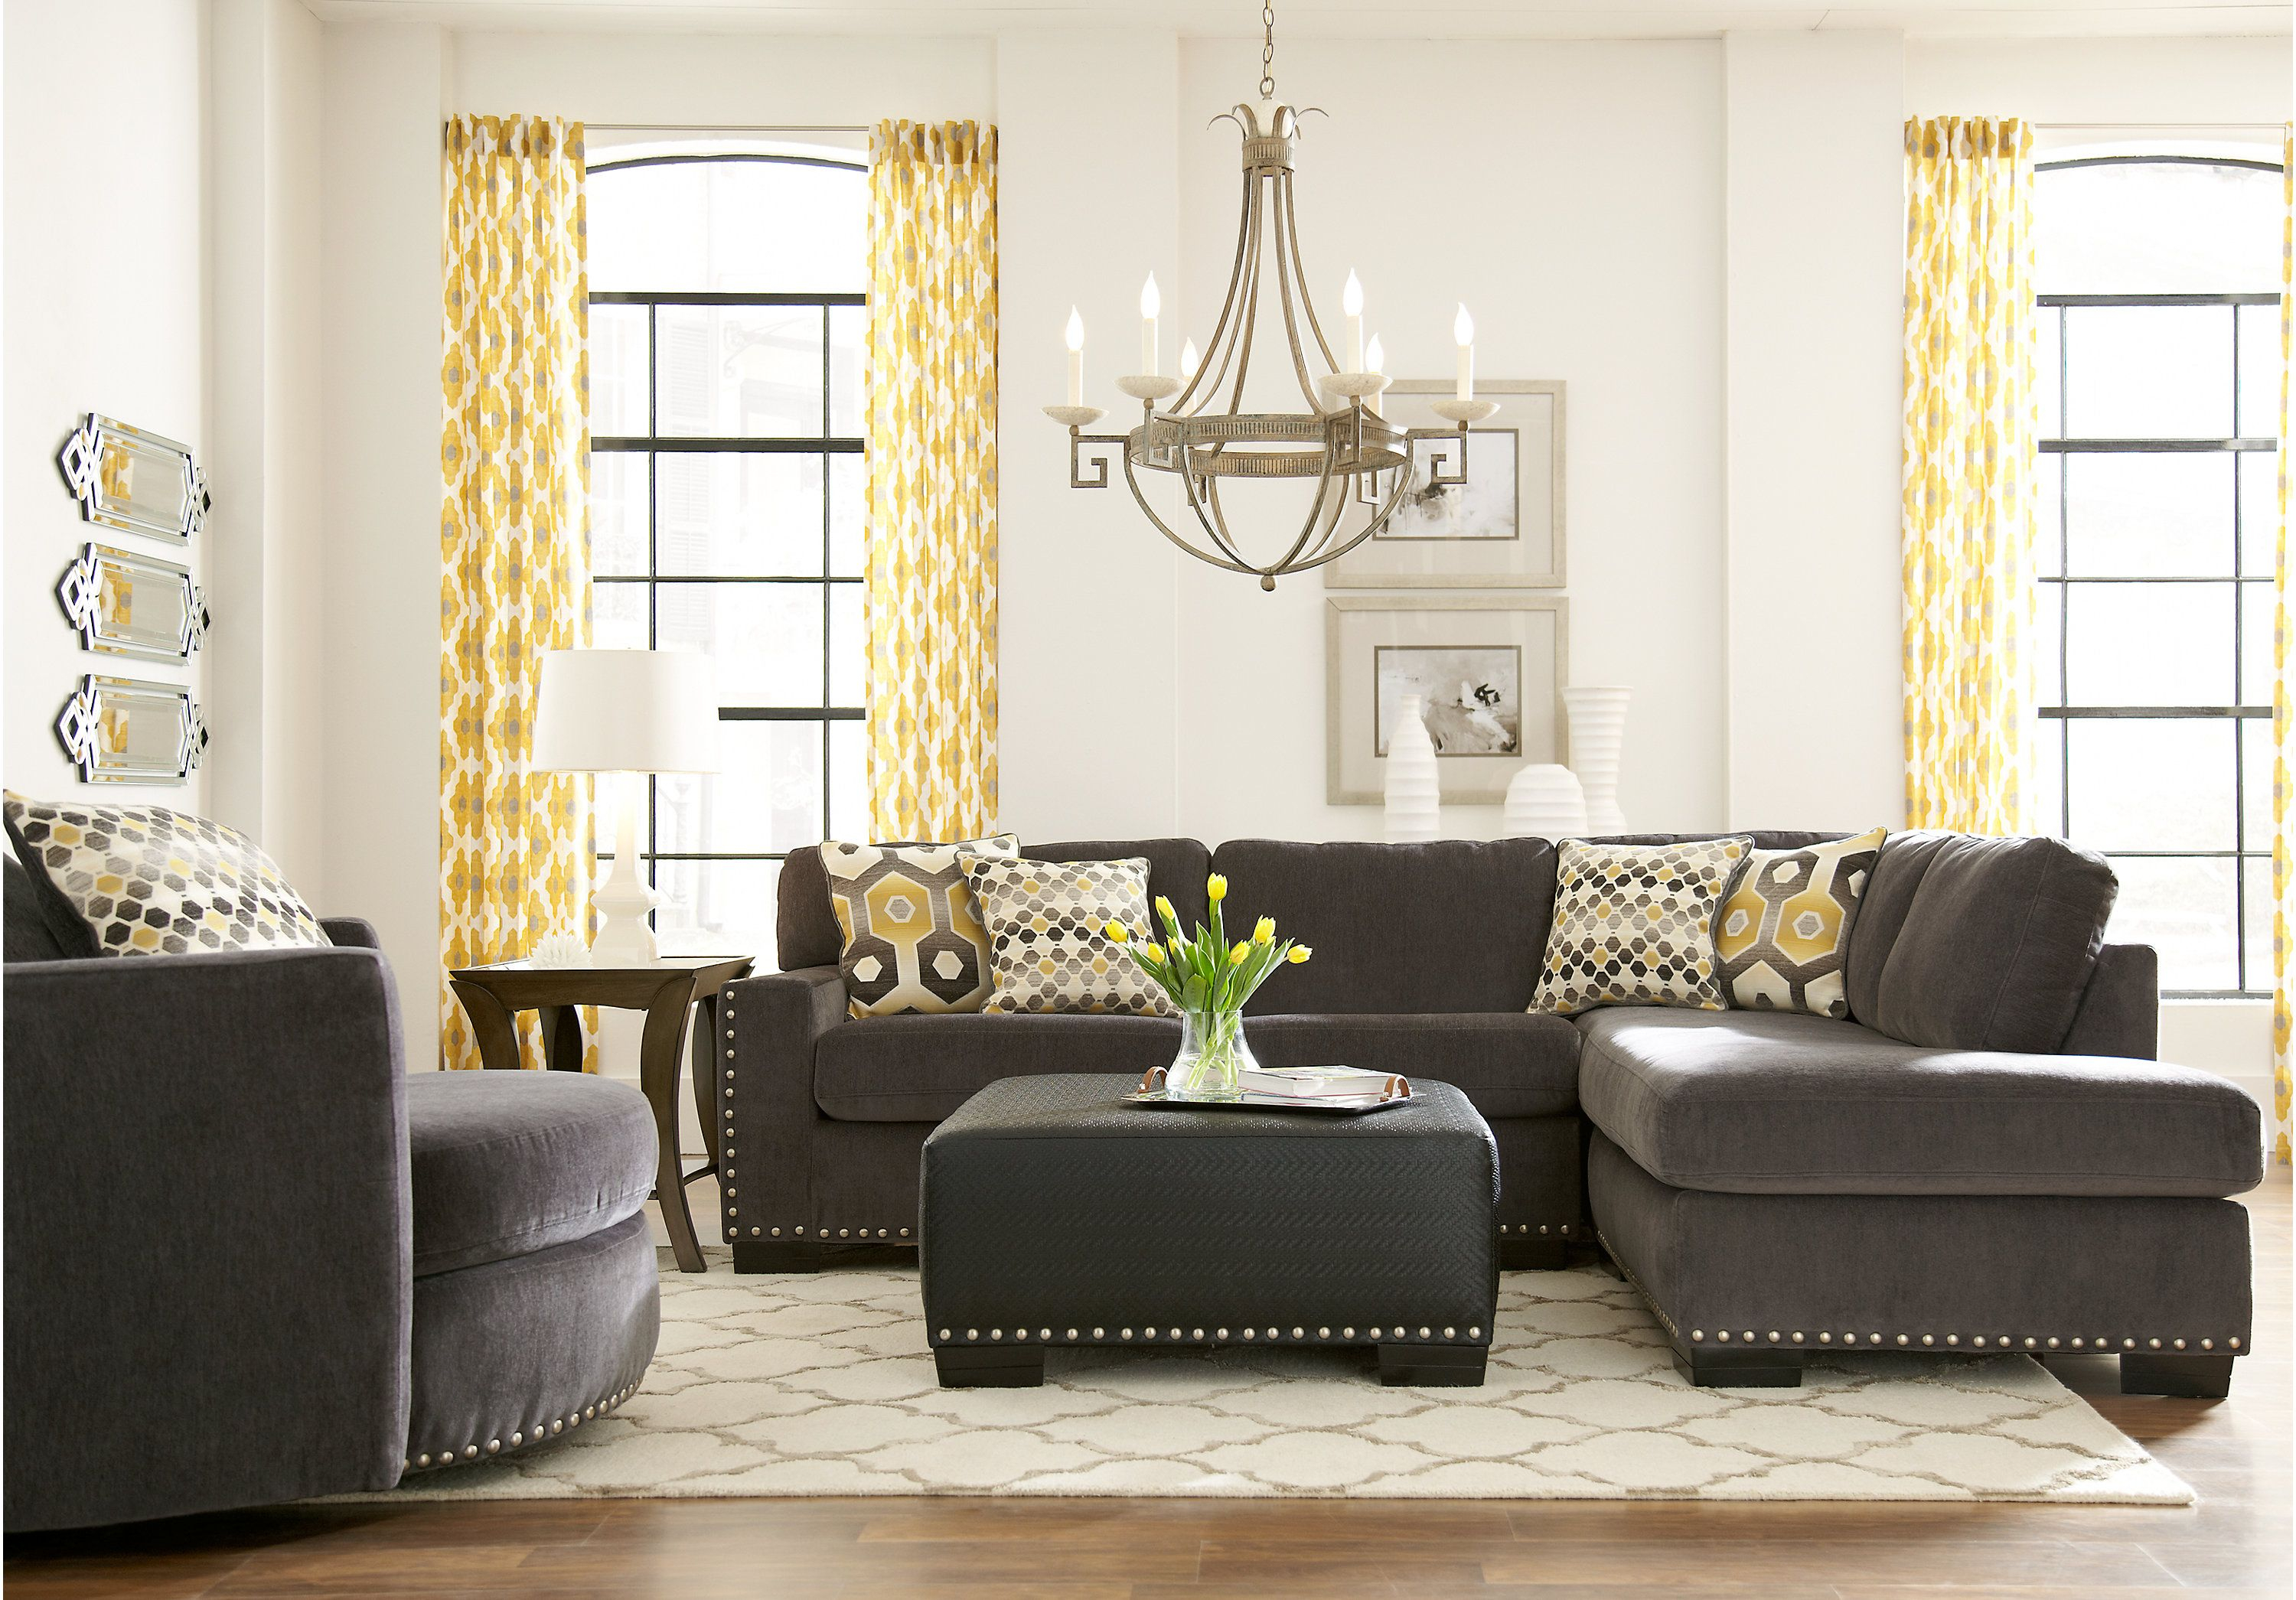 Sofia Vergara Laguna Beach Gray 2 Pc Sectional My House Is Gonna pertaining to Sofia Vergara Living Room Set